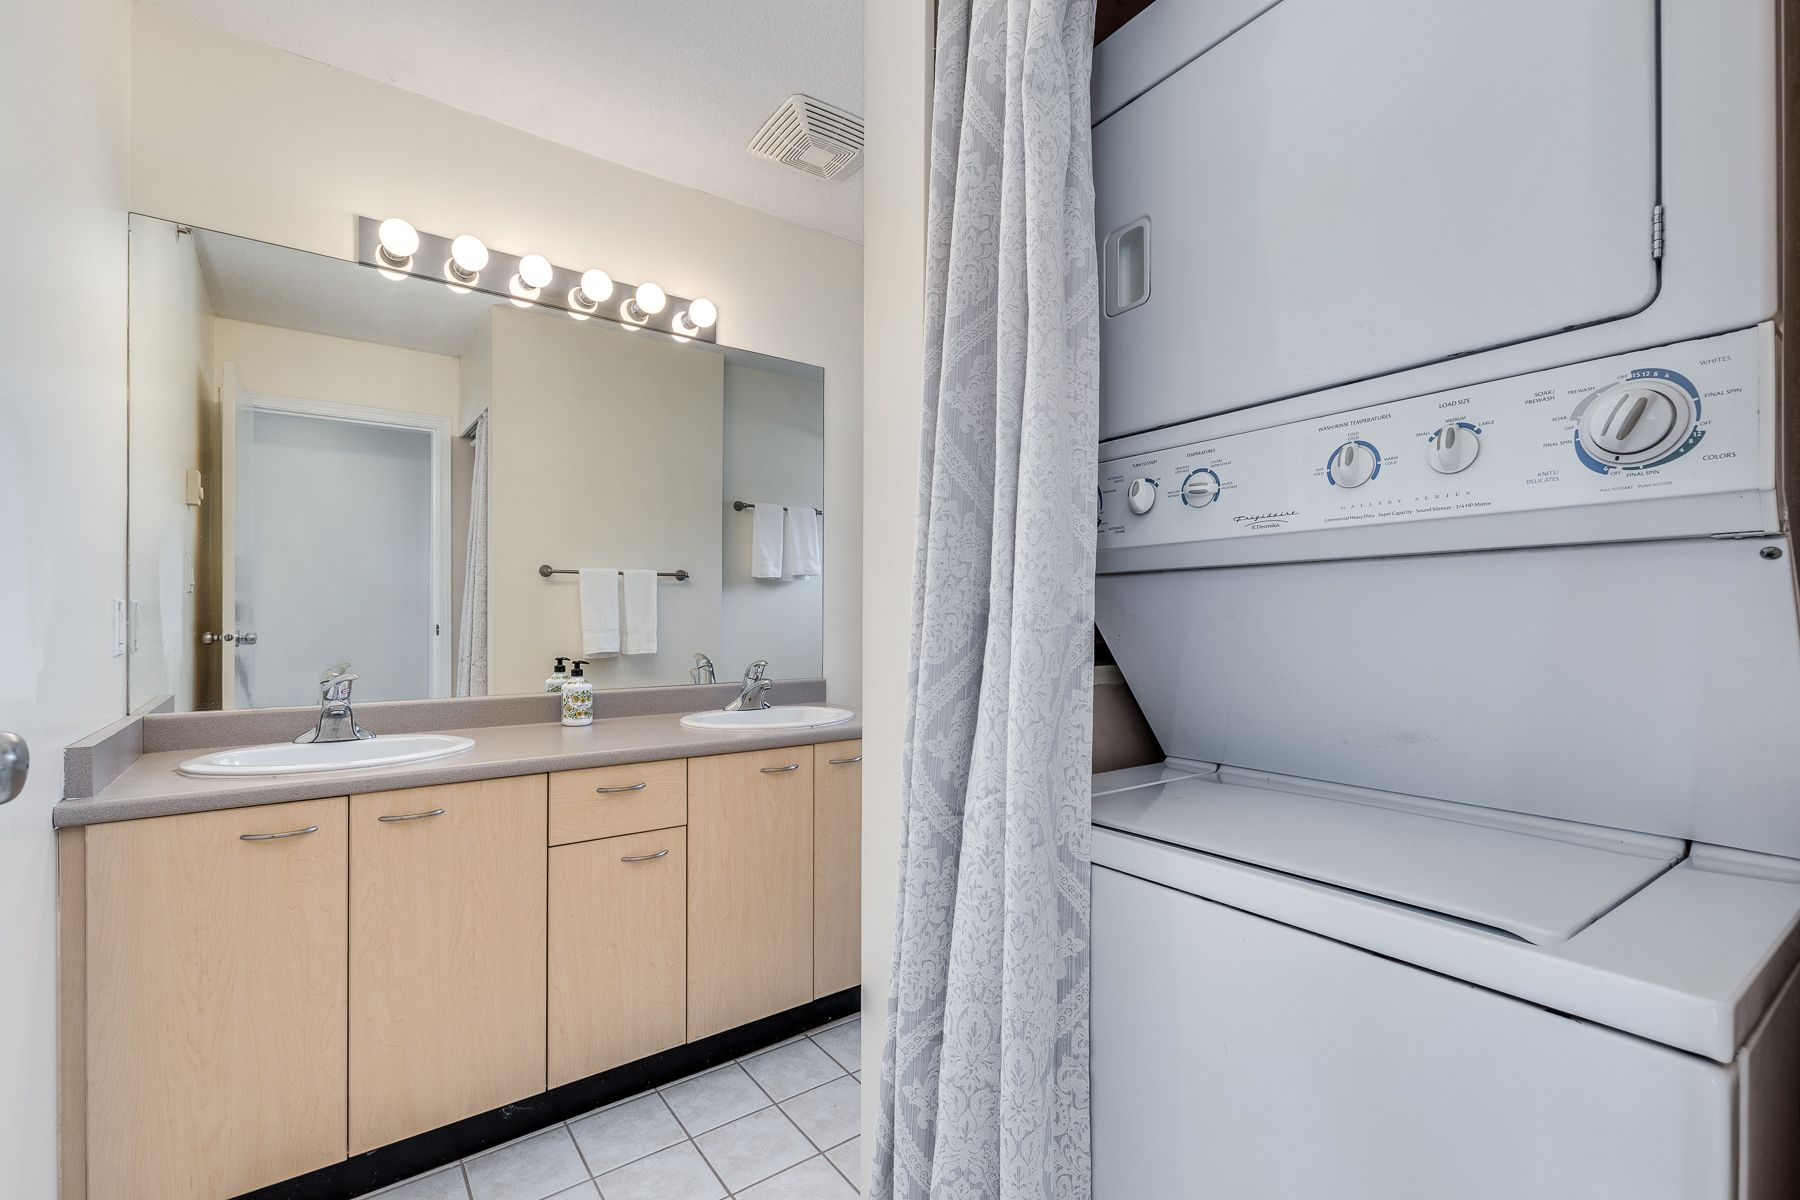 Photo 21: Photos: 7-2389 Charles St in Vancouver: Grandview Woodland Townhouse for sale (Vancouver East)